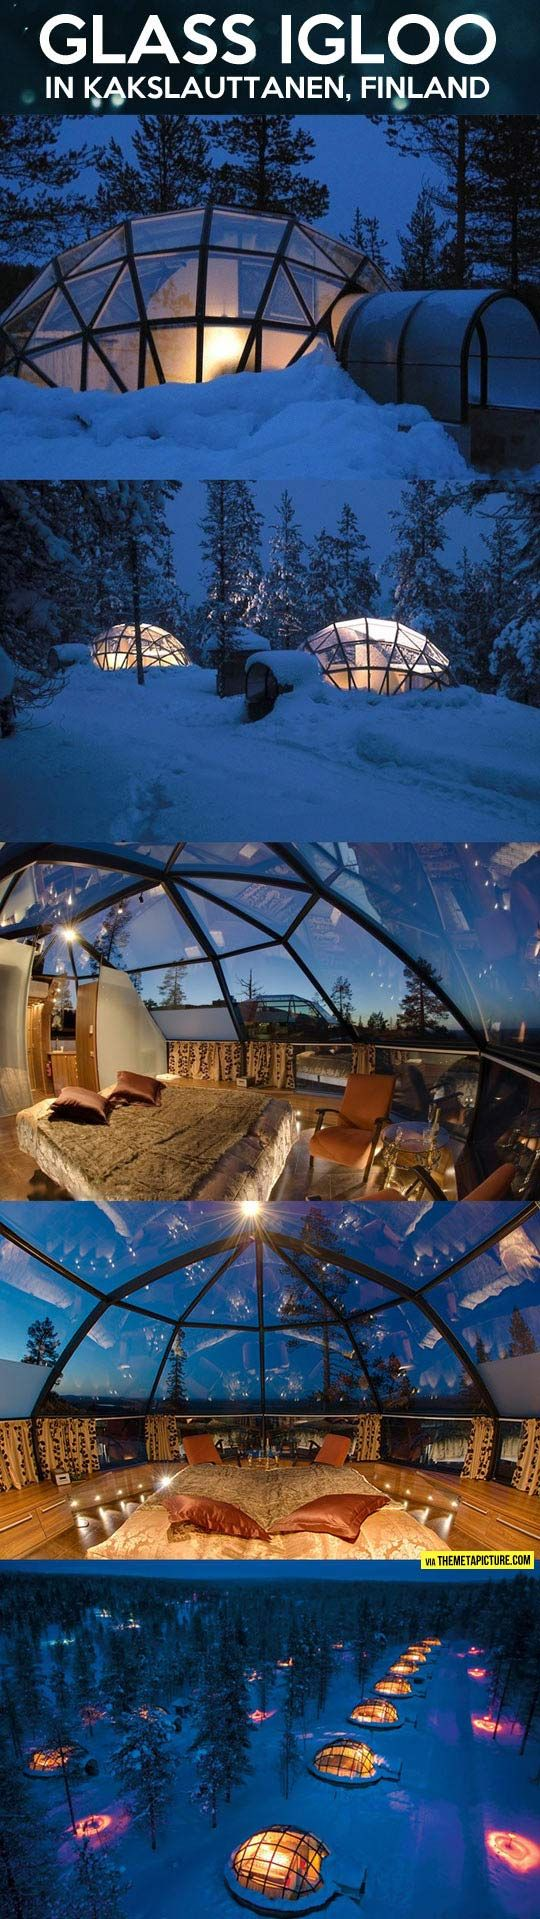 The Glass Igloo Hotel in Kakslauttanen, Finland is a family hotel in the Finnish Lapland.  It is 250 kilometres north of the Artic Circle.